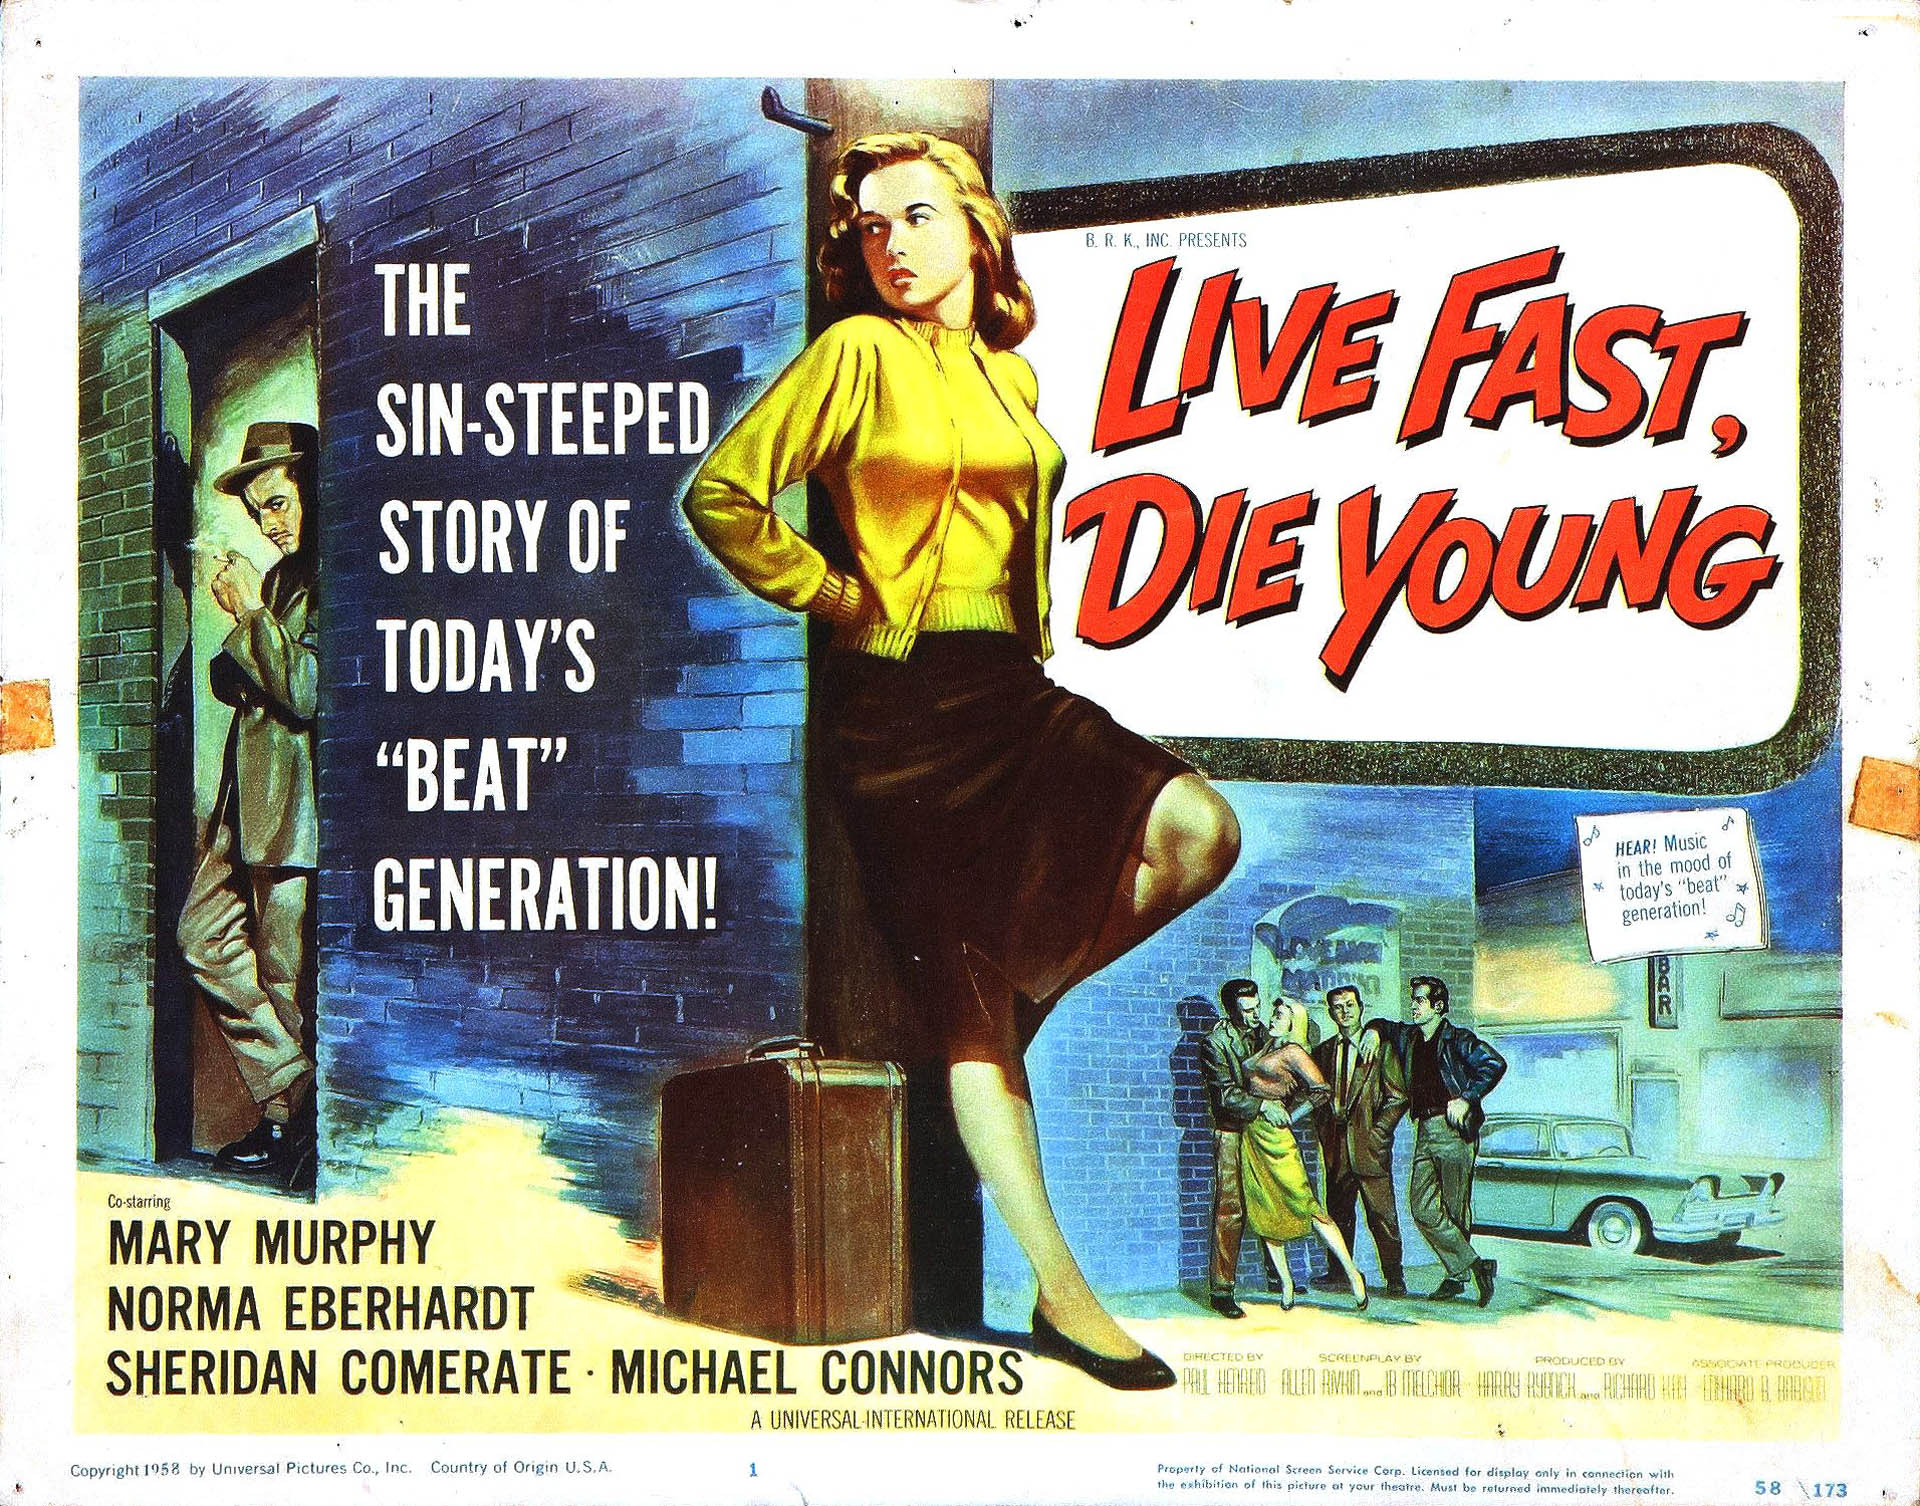 live fast die young juvenile delinquent b movie posters